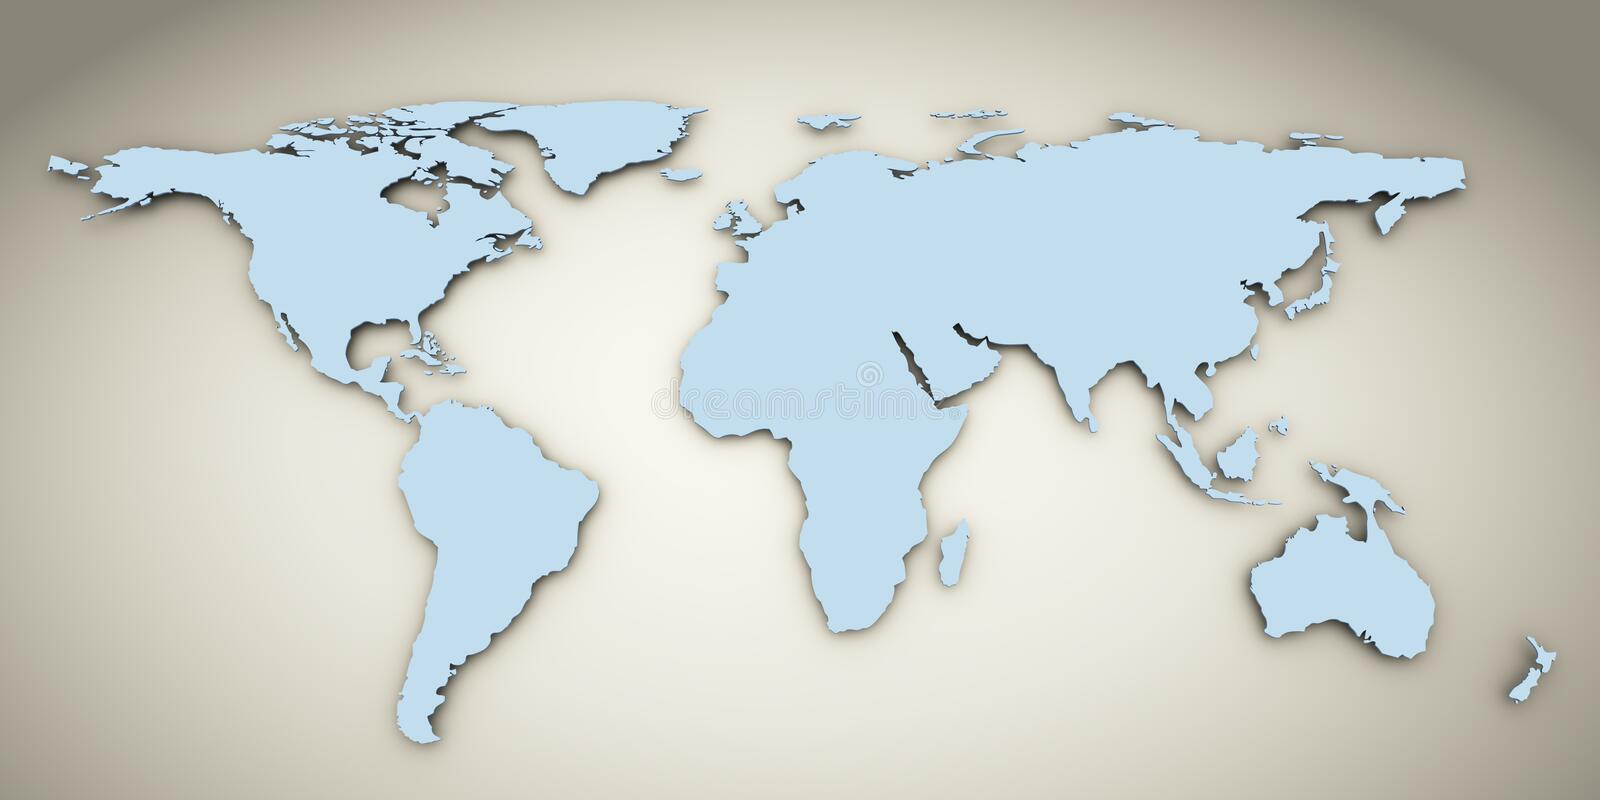 Download 3d world map stock illustration. Image of earth, asia - 22361852